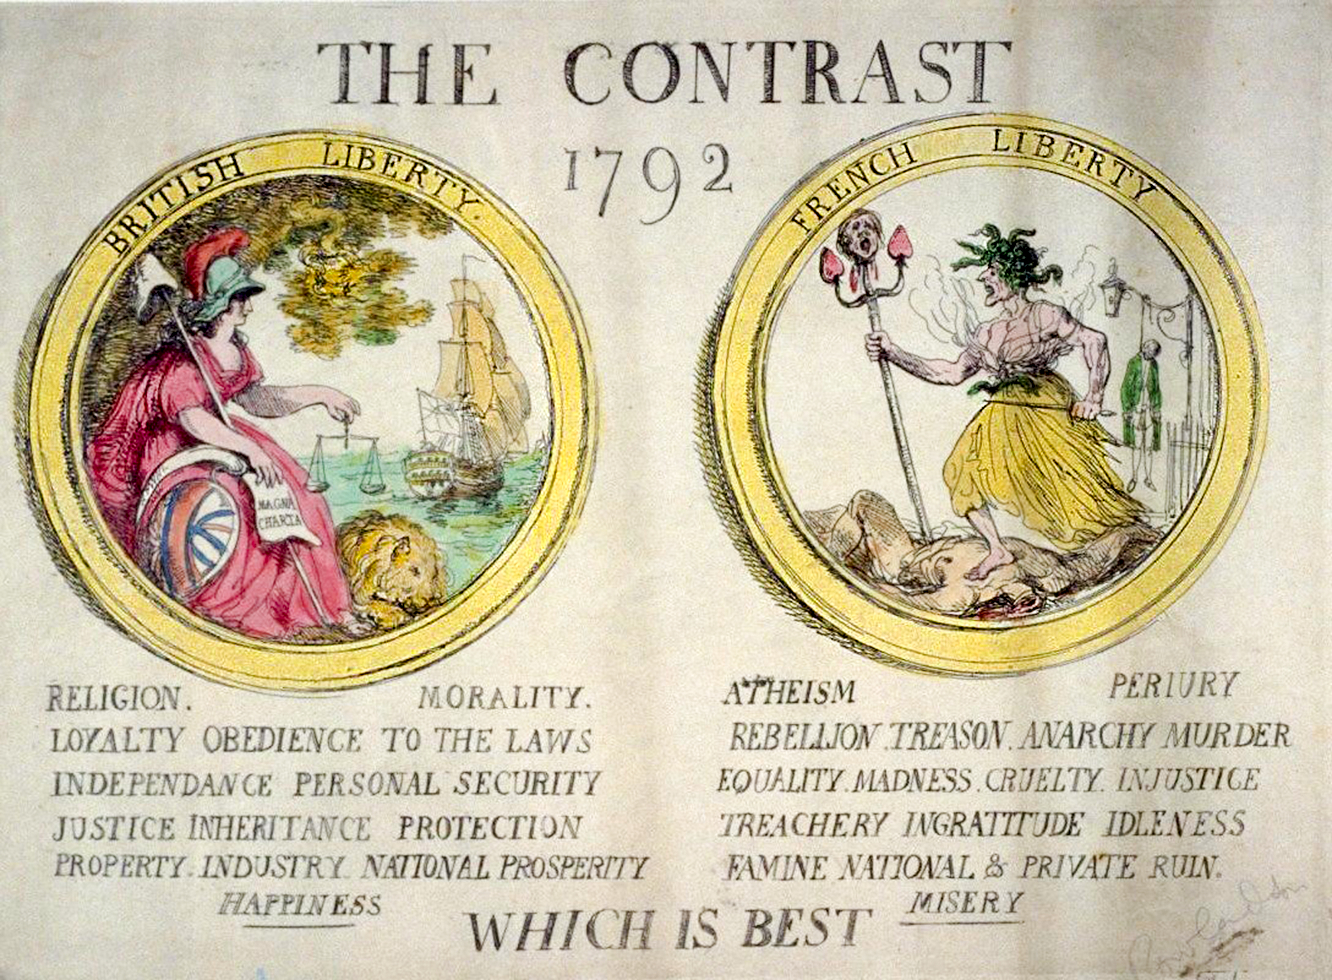 A 1792 caricature by Thomas Rowlandson contrasts